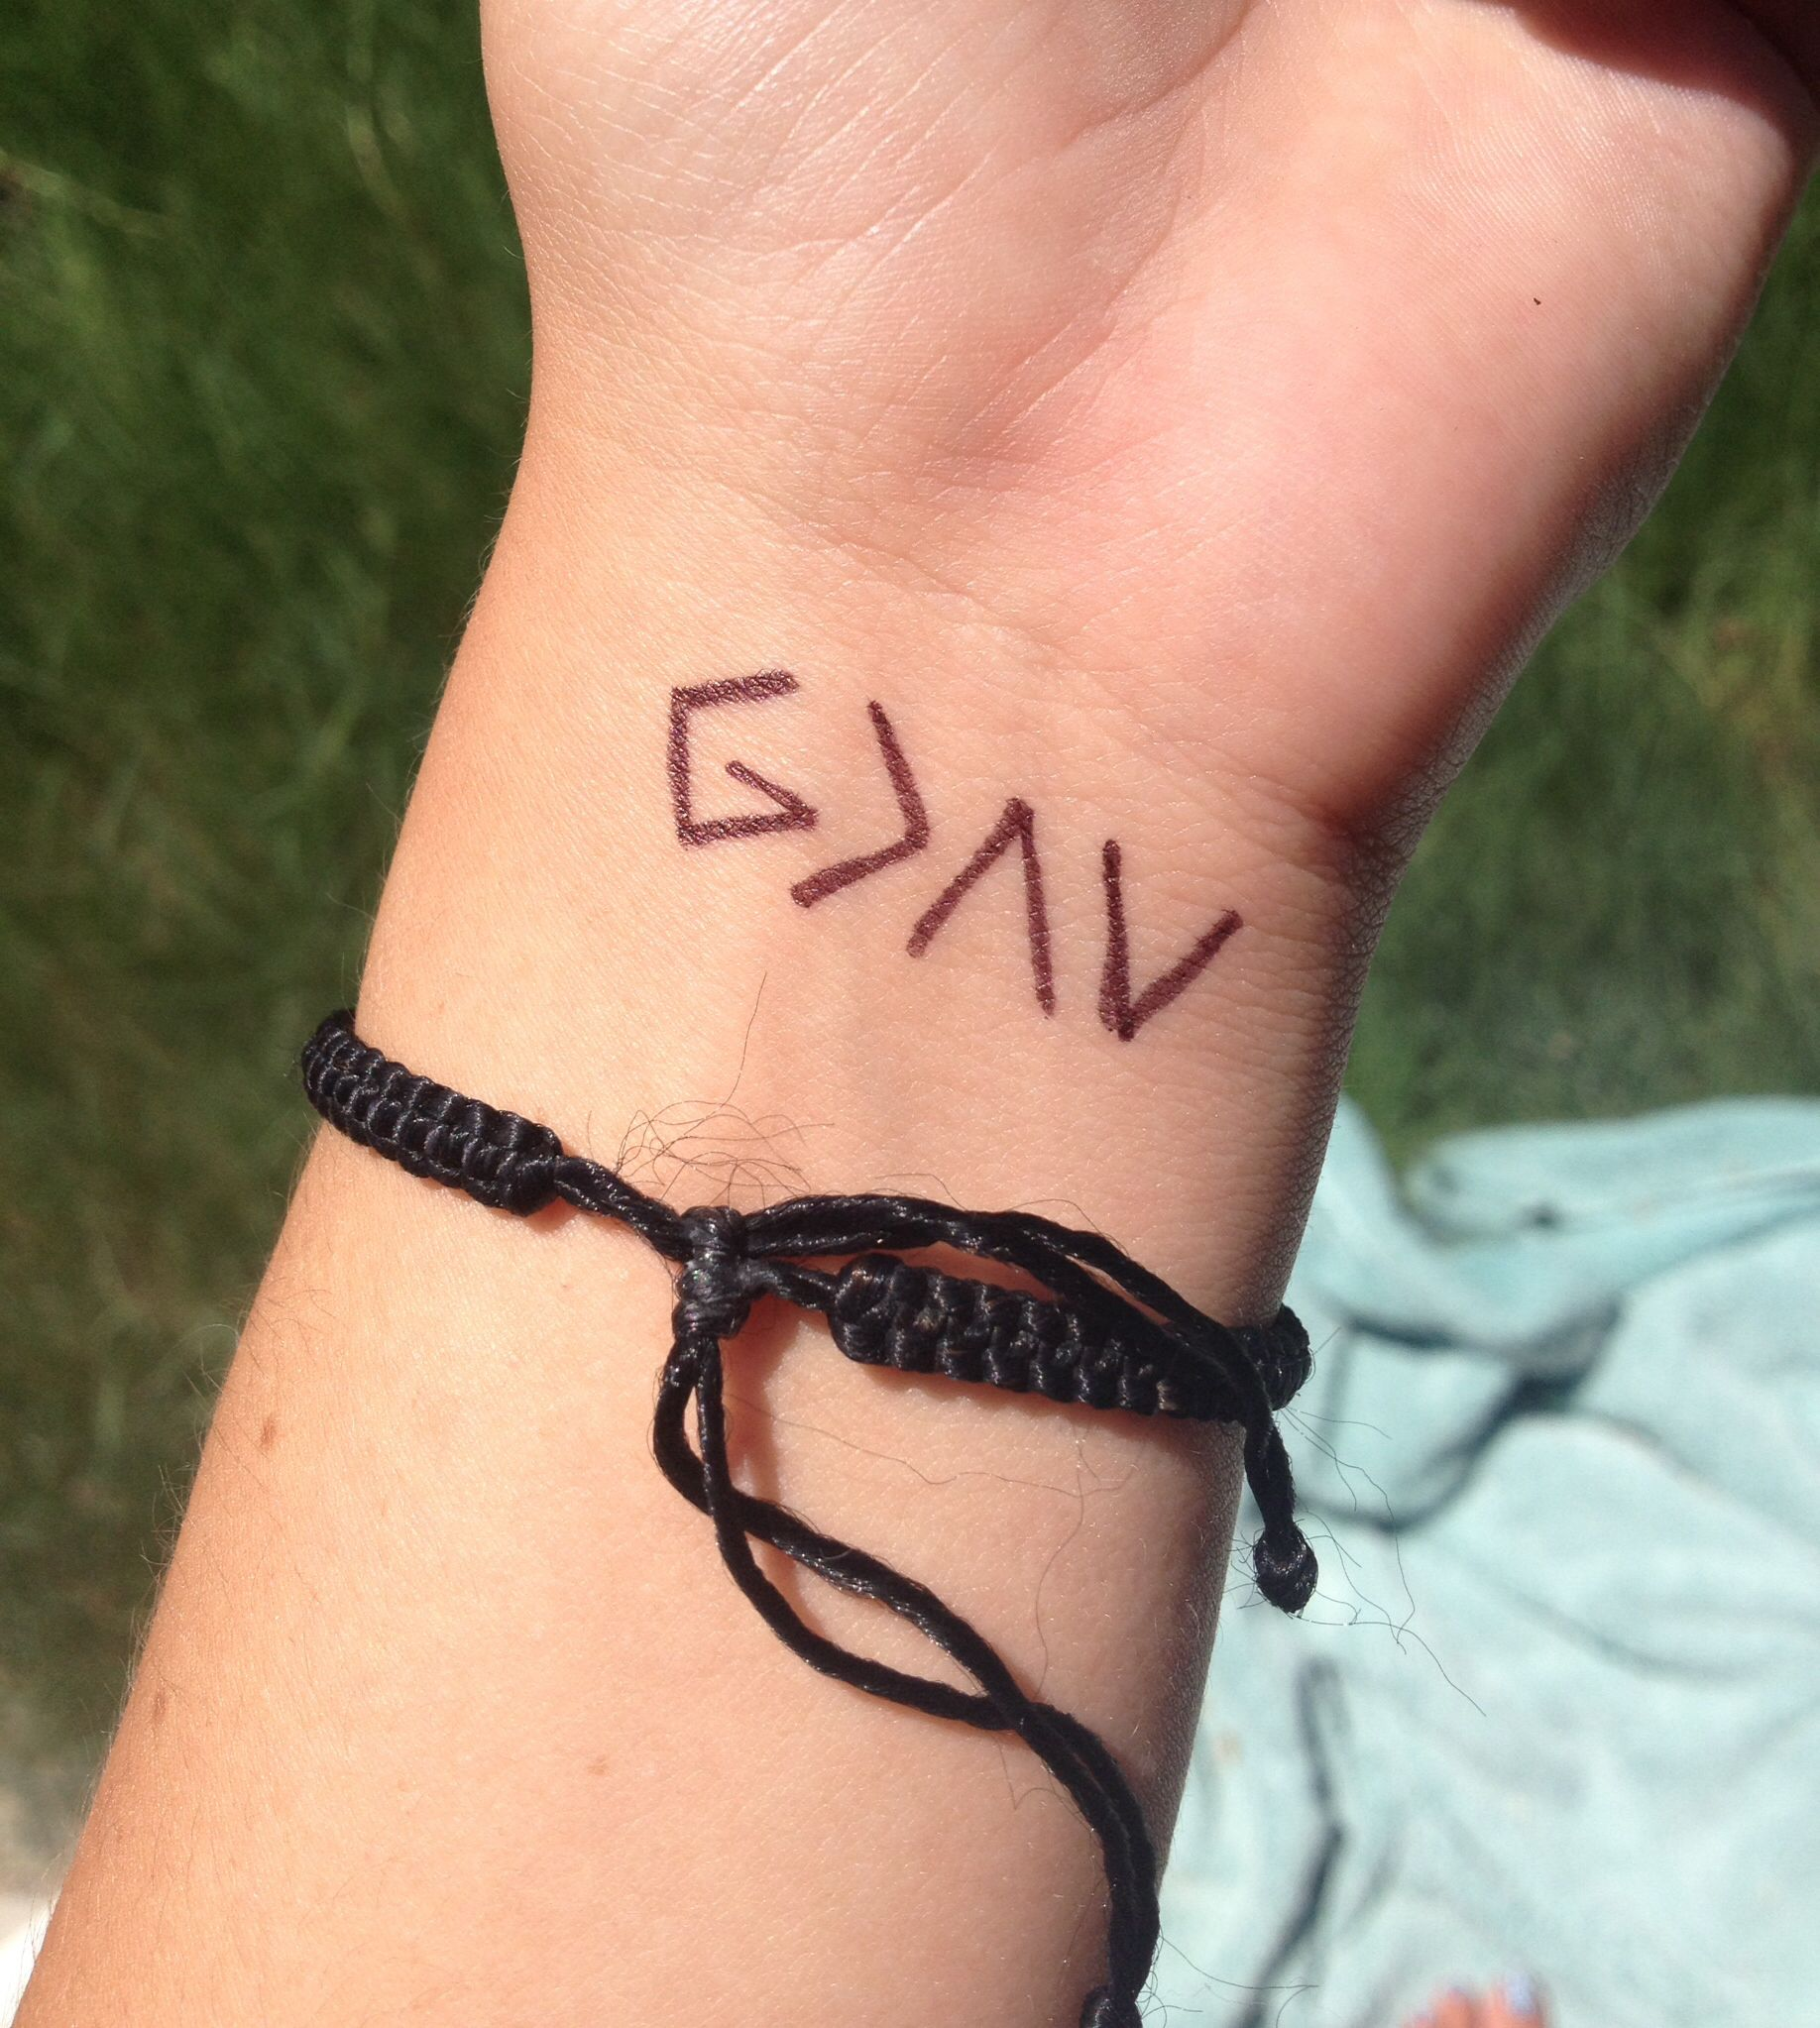 Tattoo Ideas Deep Meaning: 28+ [tattoos With Deep Meanings]